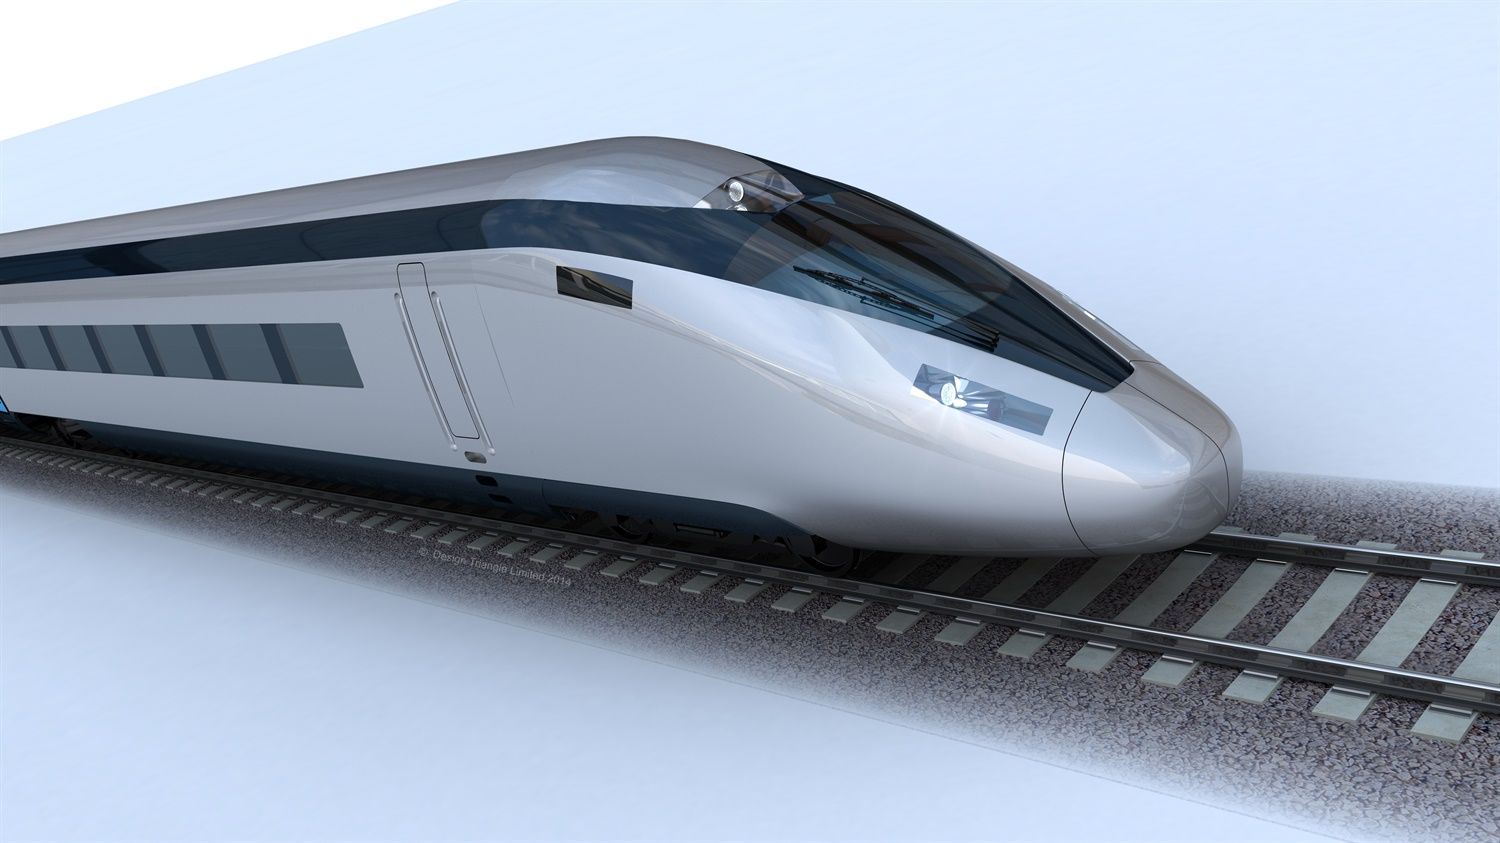 Transport experts call for independent review of HS2 options